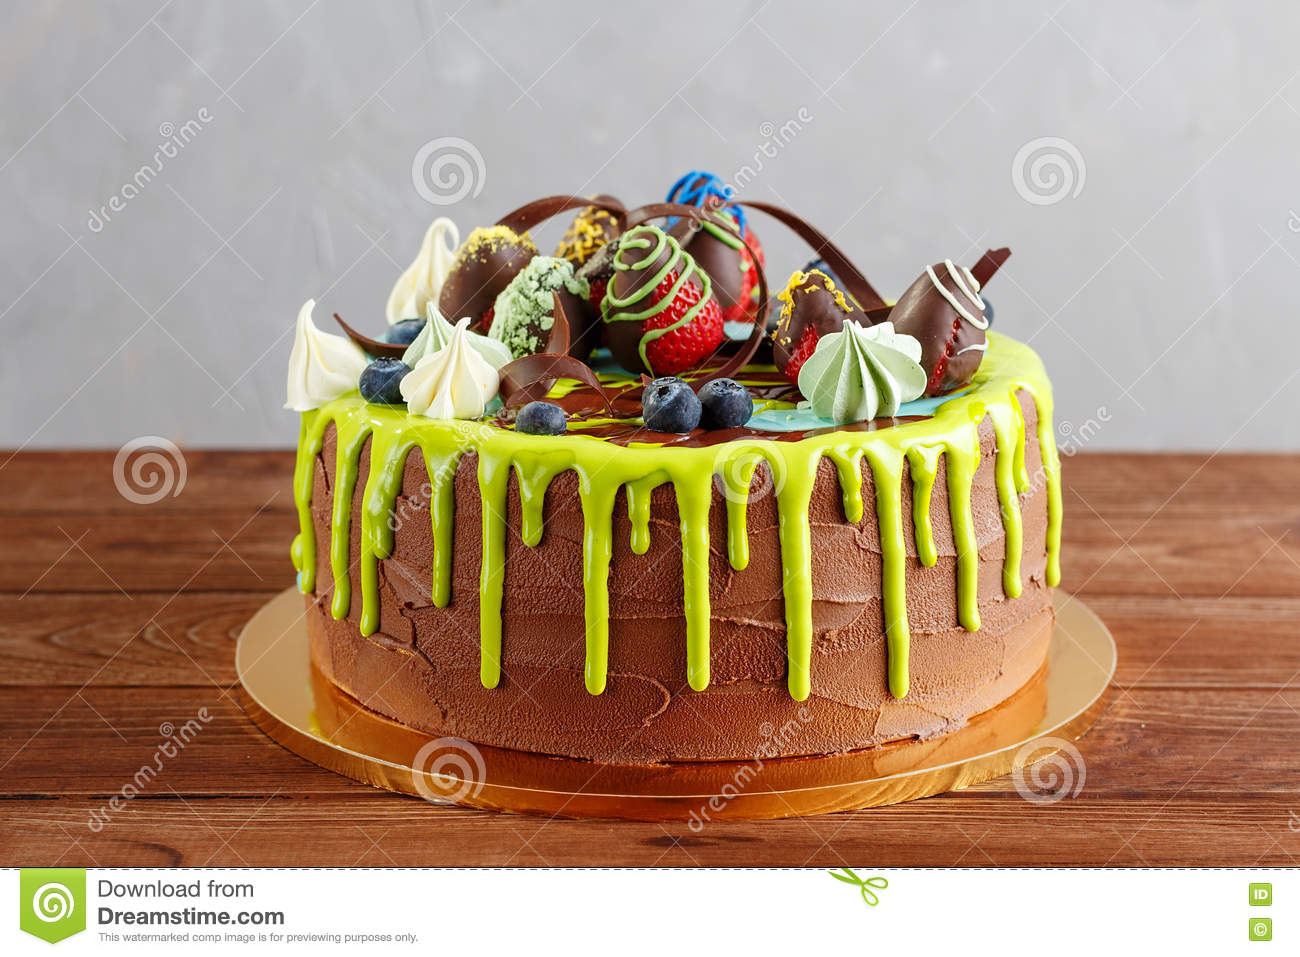 Colorful Chocolate Cake With Fruit And Glaze Stock Photo Image of